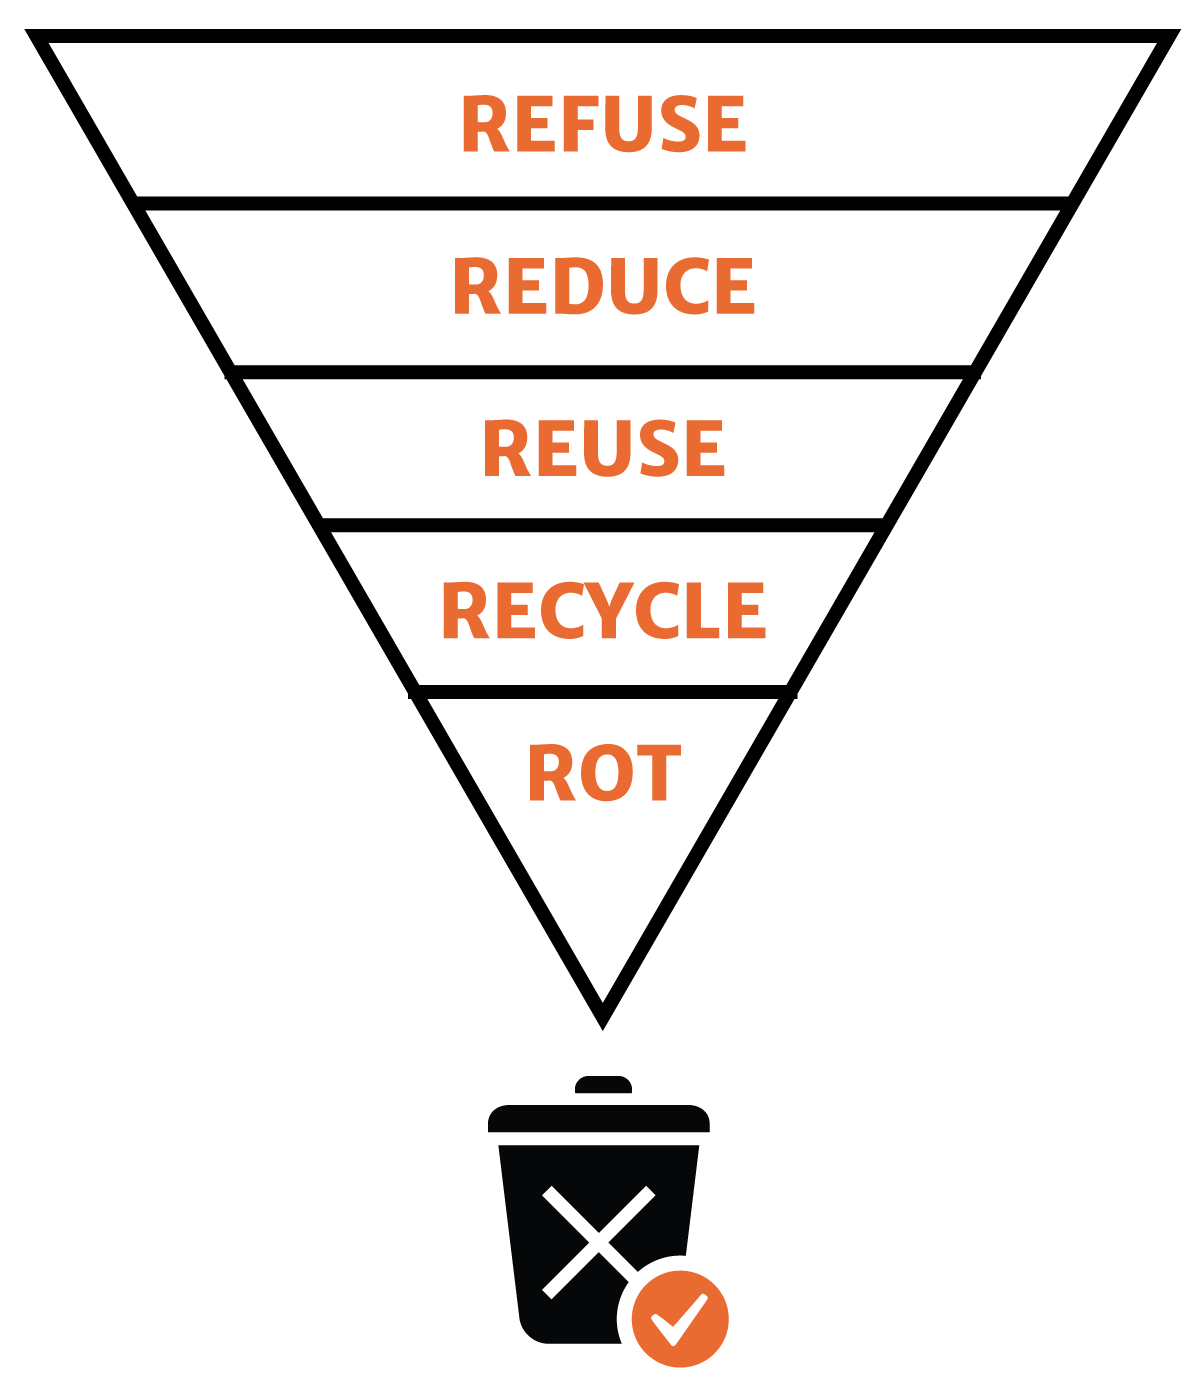 Refuse Reduce Reuse Recycle Rot